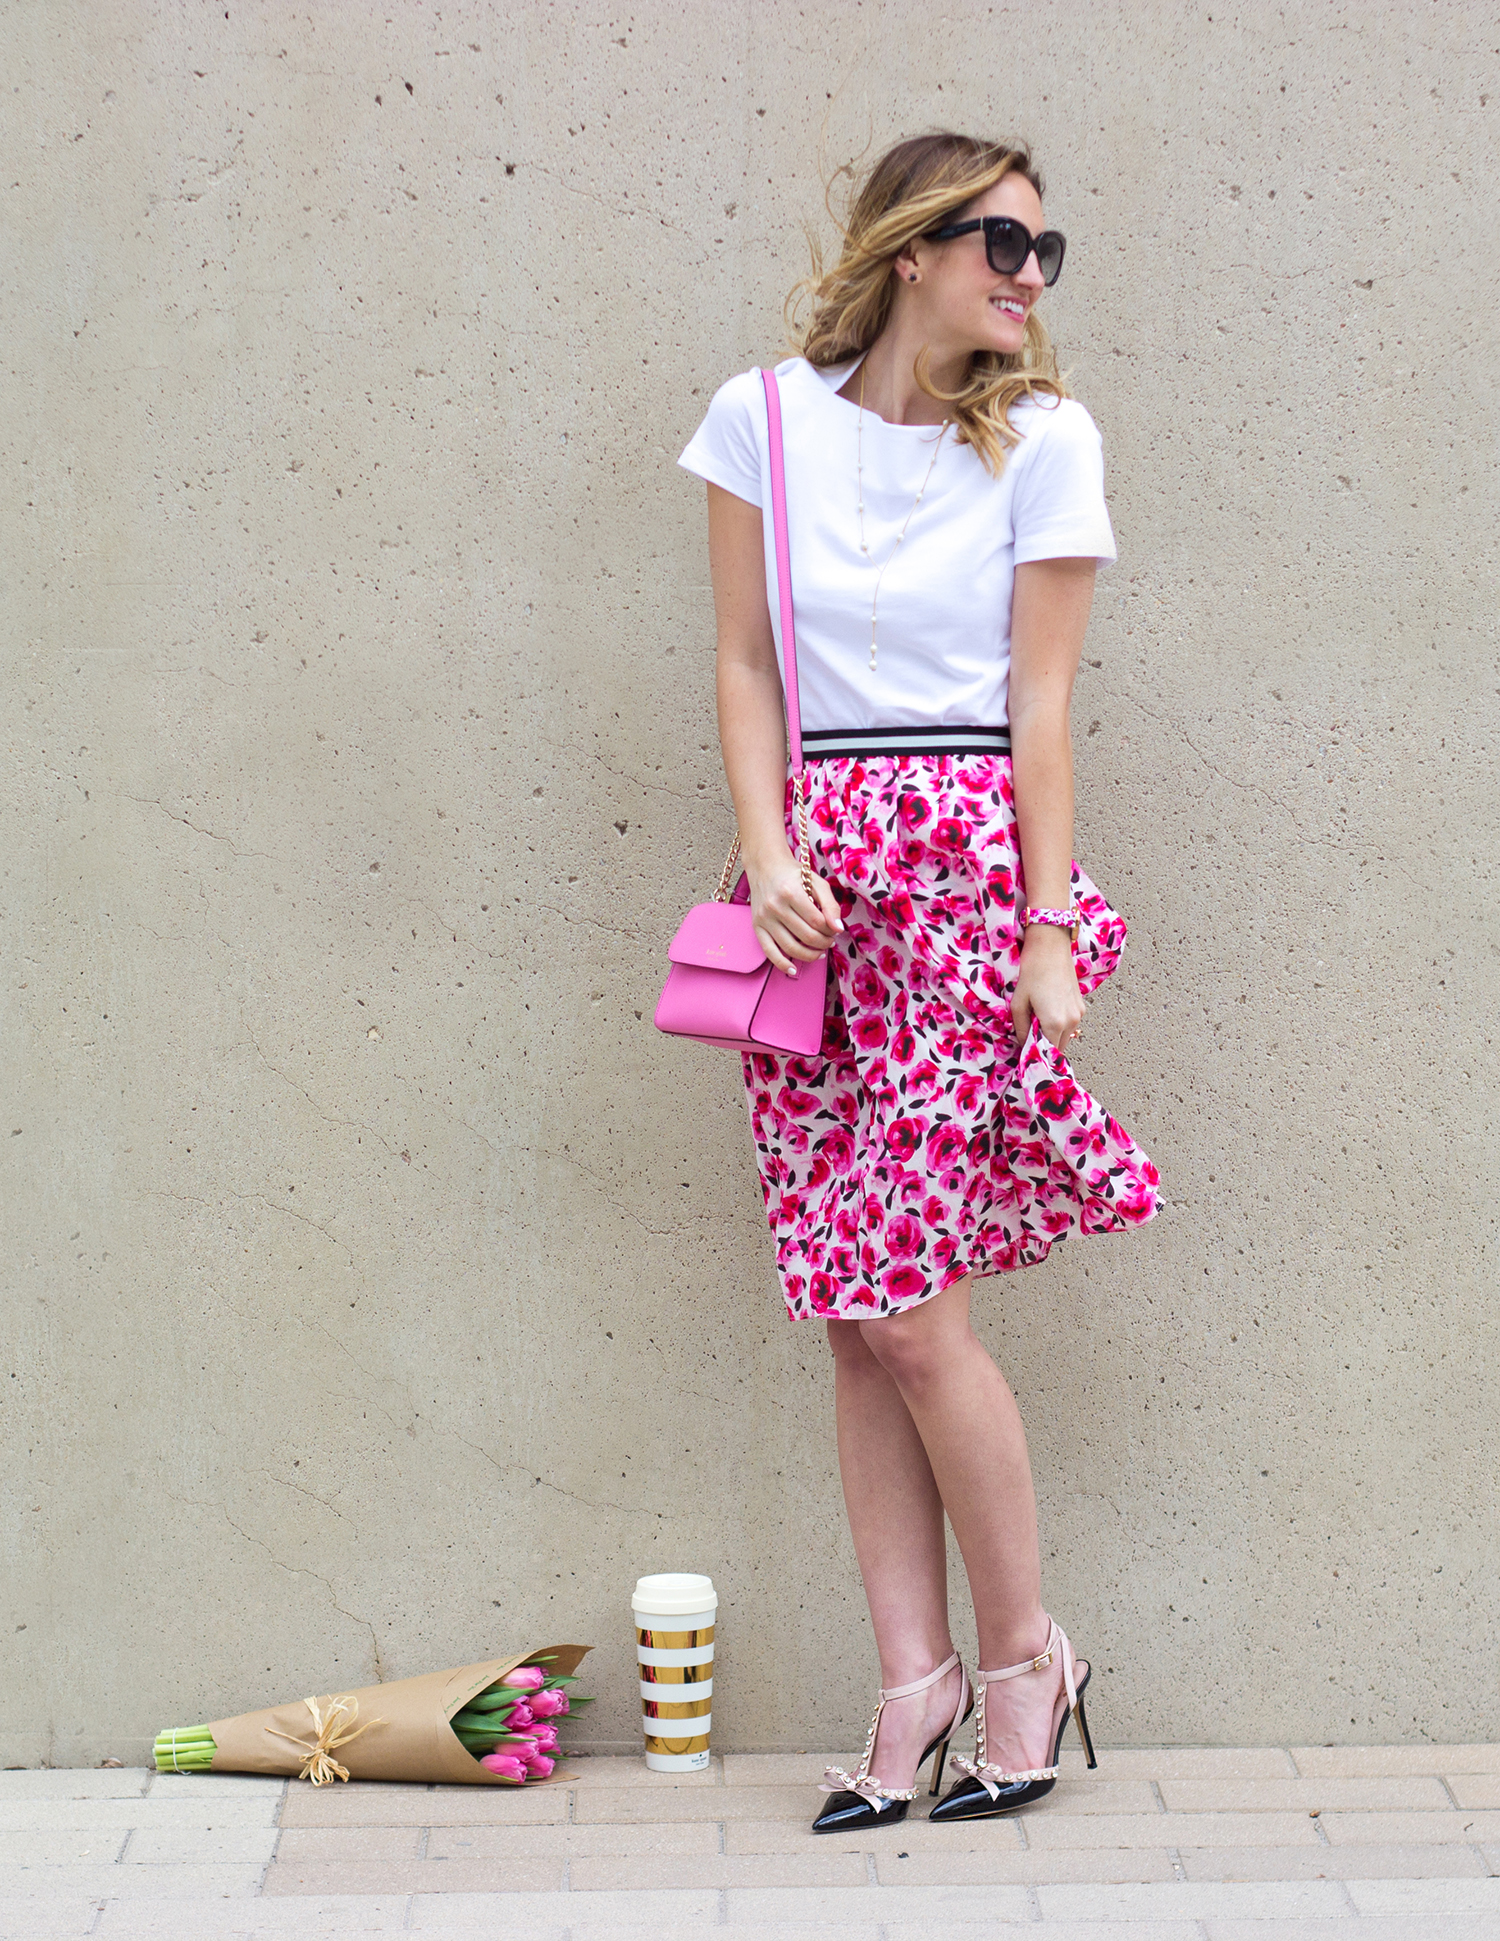 livvyland-blog-olivia-watson-austin-texas-fashion-blogger-kate-spade-broome-street-everyday-tee-white-rose-pleated-skirt-pink-black-spring-outfit-7